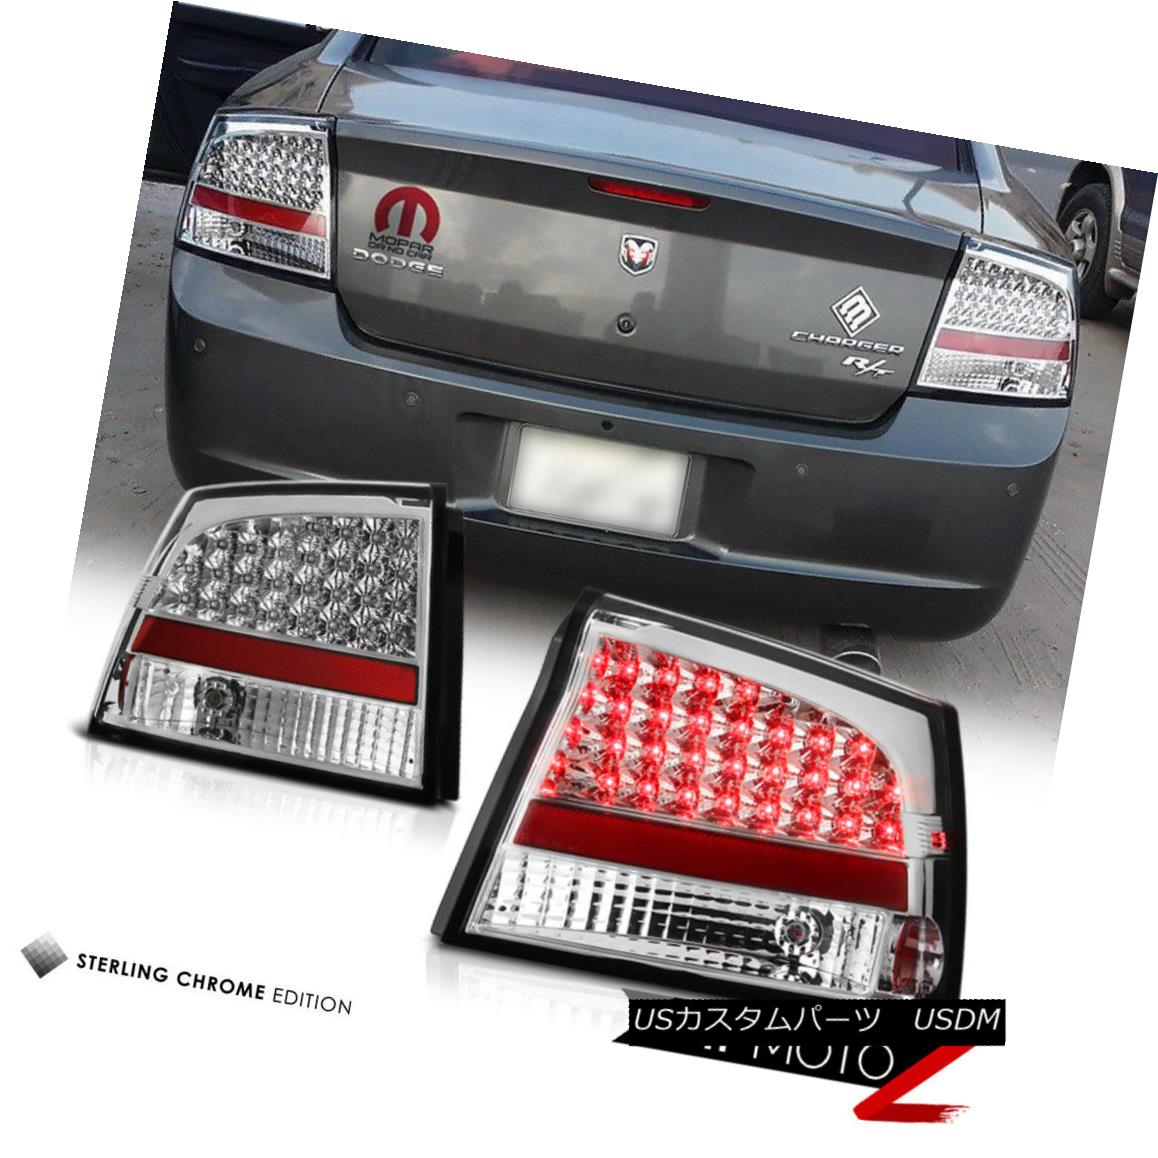 テールライト 2006-2008 DODGE CHARGER Euro Chrome LED SMD Rear Tail Light Brake Lamps Set 2006-2008 DODGE CHARGERユーロクロームLED SMDリアテールライトブレーキランプセット